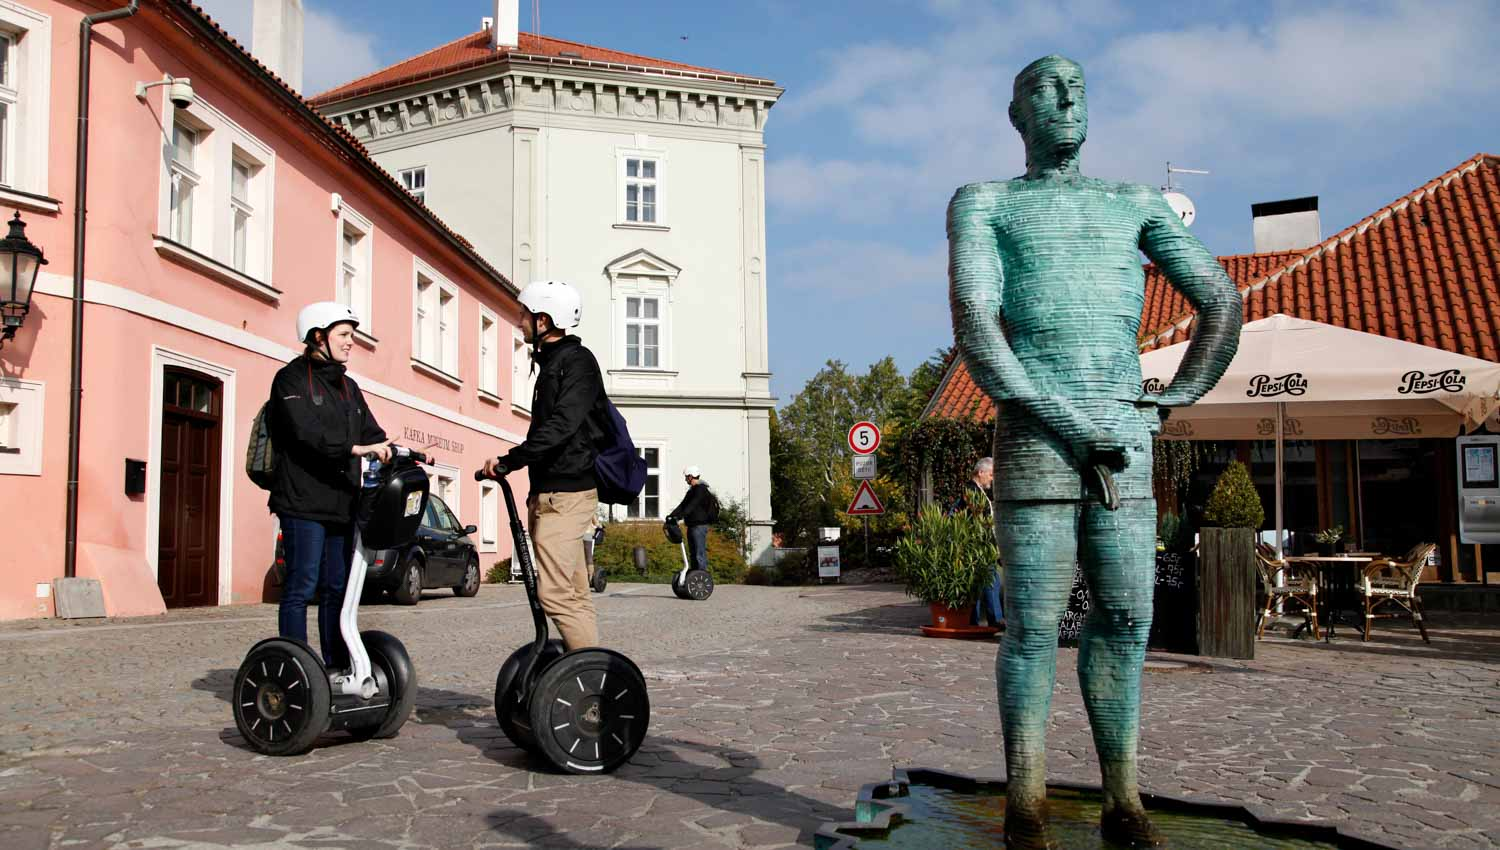 Tours offer excellent Segway Safety Training